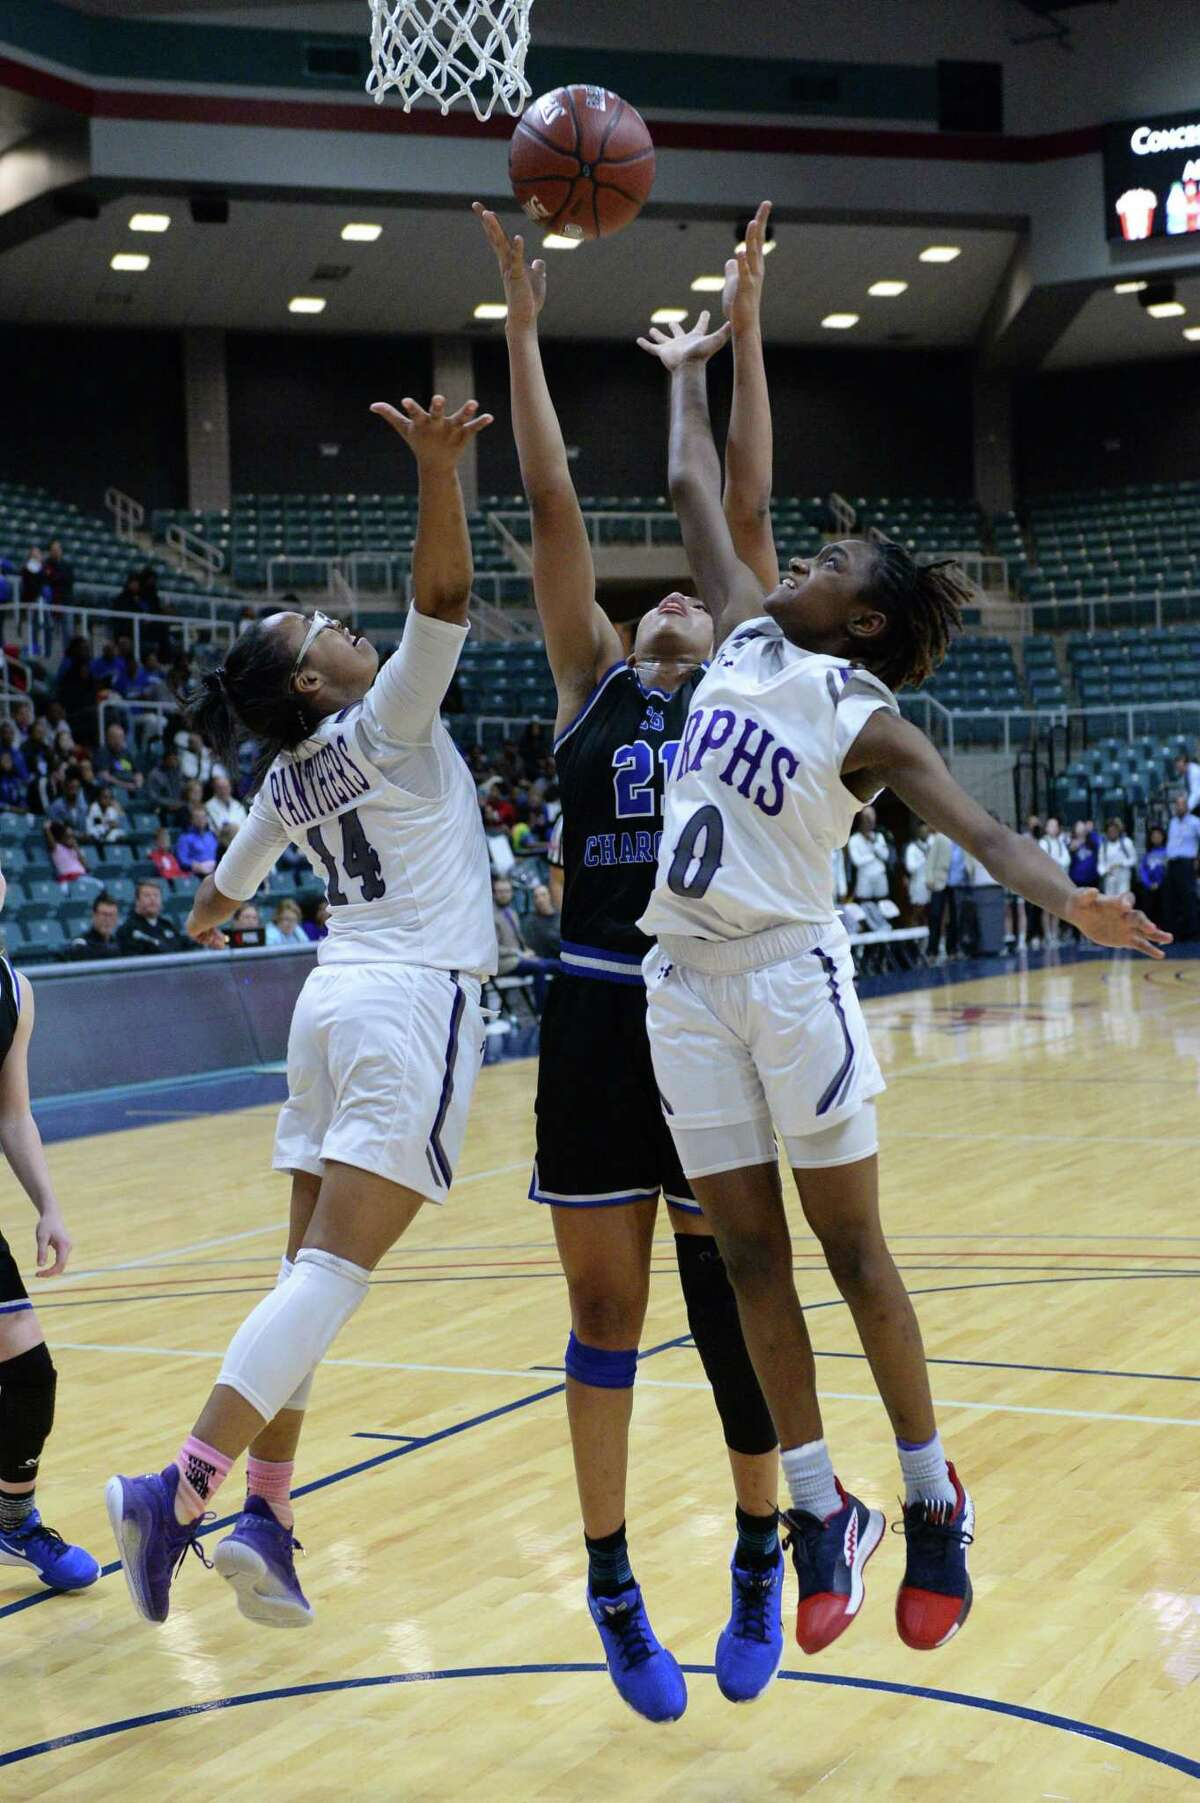 Aleighyah Fontenot (14) and Raven Adams (0) of Ridge Point compete with Niyah Johnson (21) of Clear Springs for a rebound during the fourth quarter of a Girls 6A Region III semifinal play-off game between the Ridge Point Panthers and the Clear Springs Chargers on Friday, February 28, 2020 at the Leonard Merrell Center, Katy, TX.